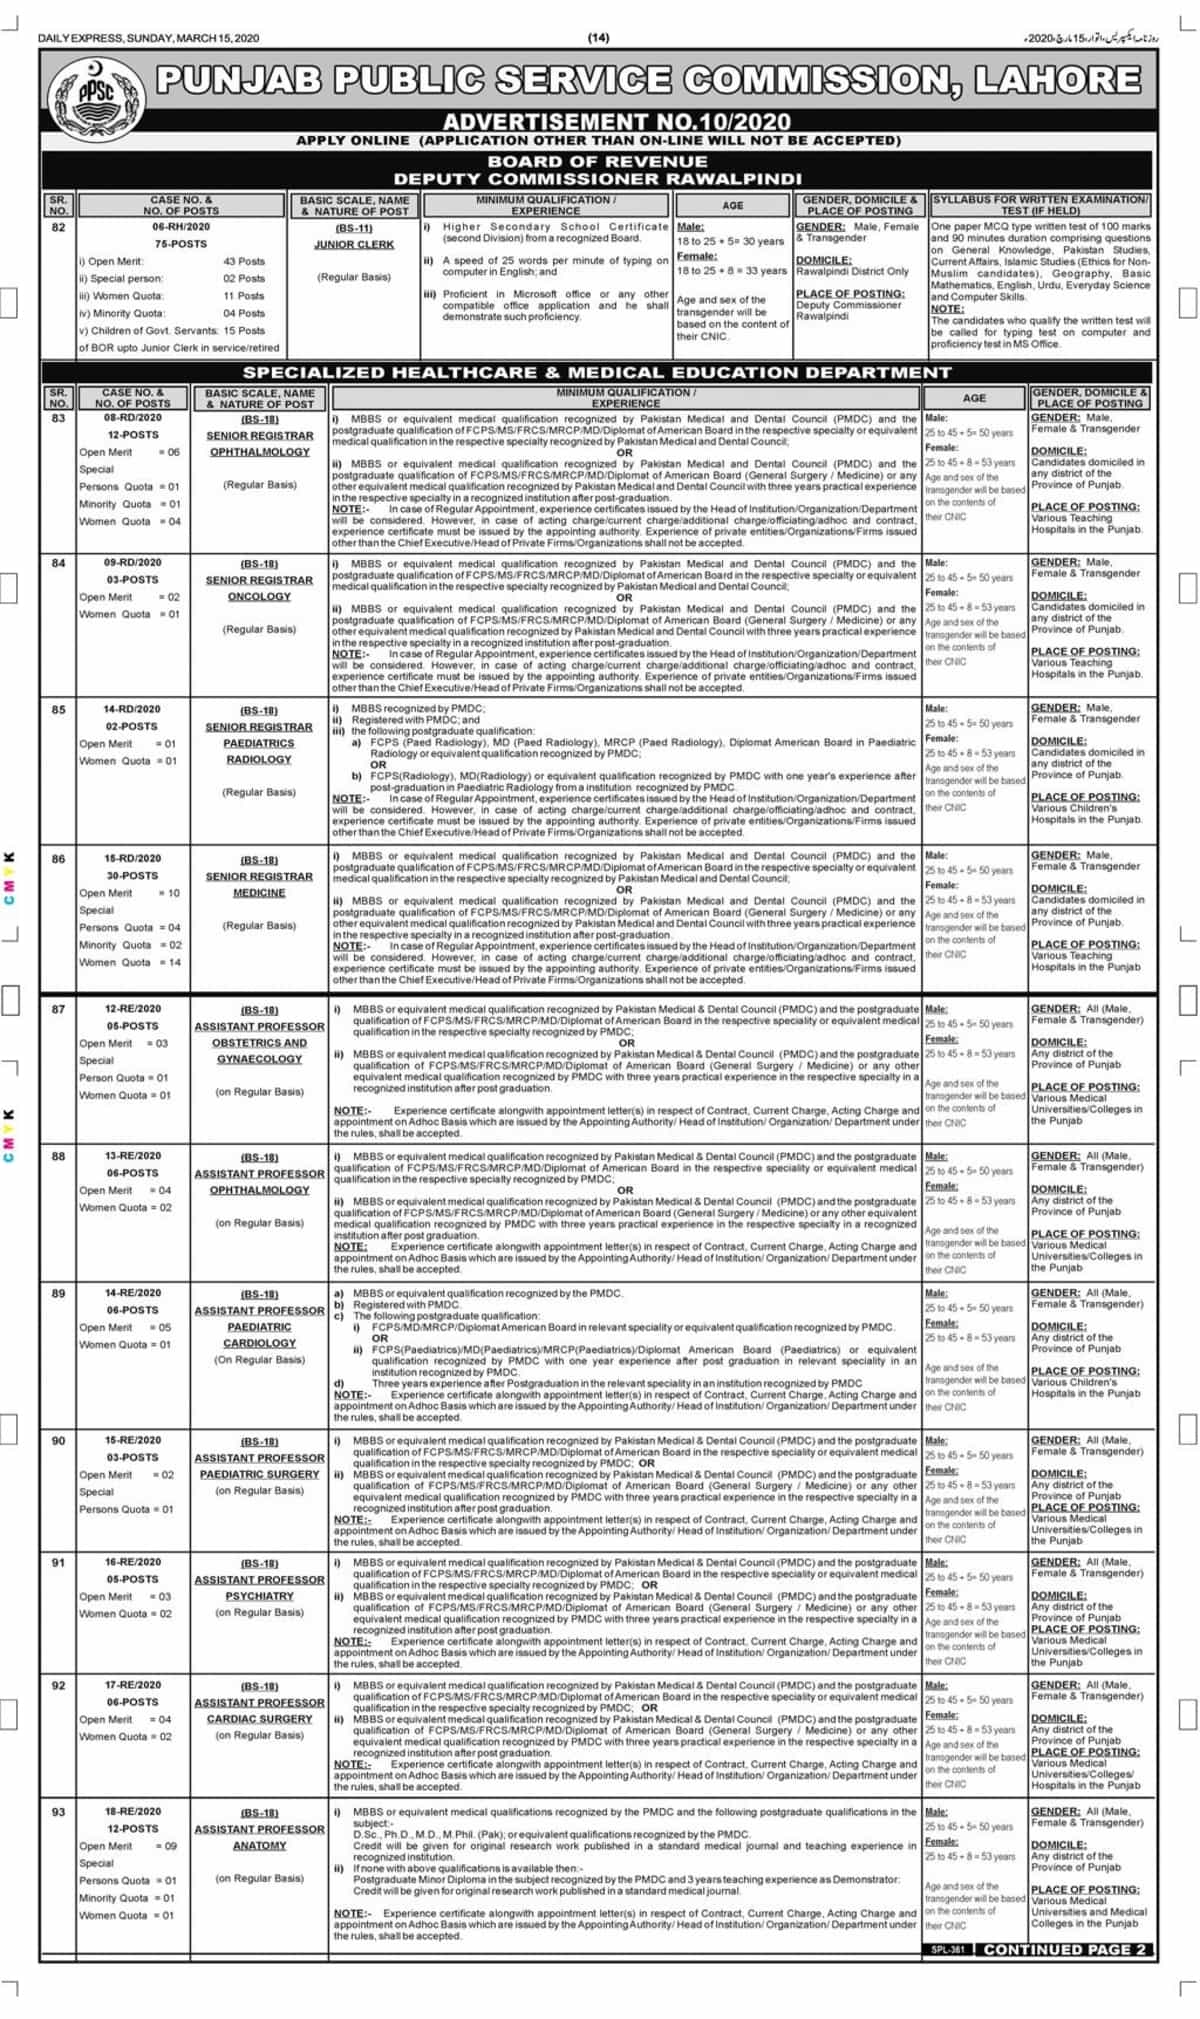 PPSC Jobs 2020 Advertisement No 10 Apply Online Latest 1